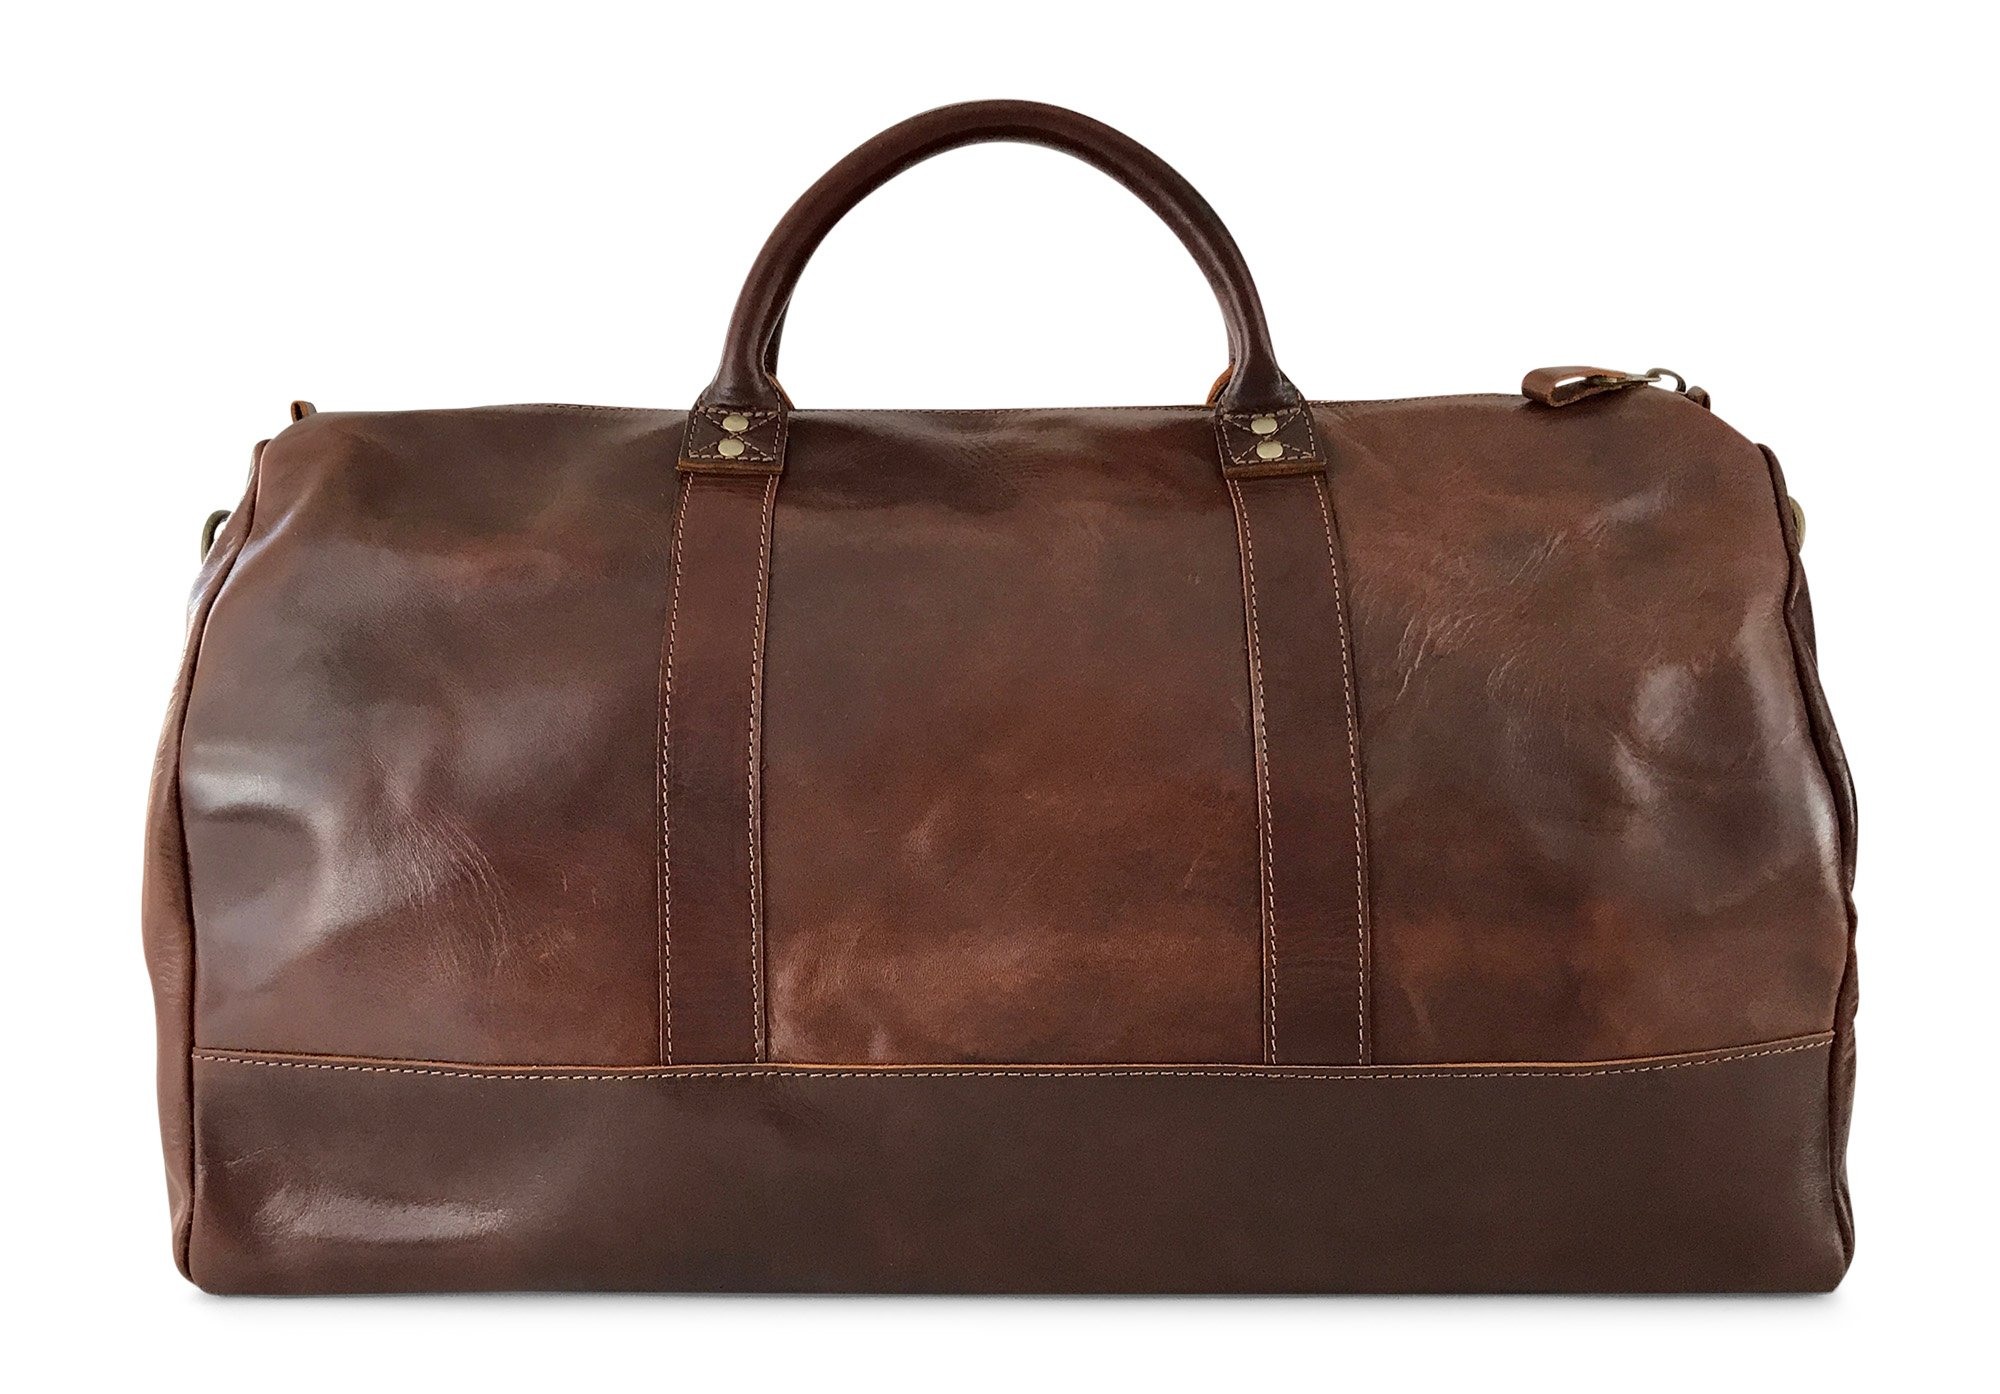 Vintage Full Grain Leather Duffle Bag & Weekend Carryall by Jackson Wayne (Vintage Brown) by Jackson Wayne (Image #2)